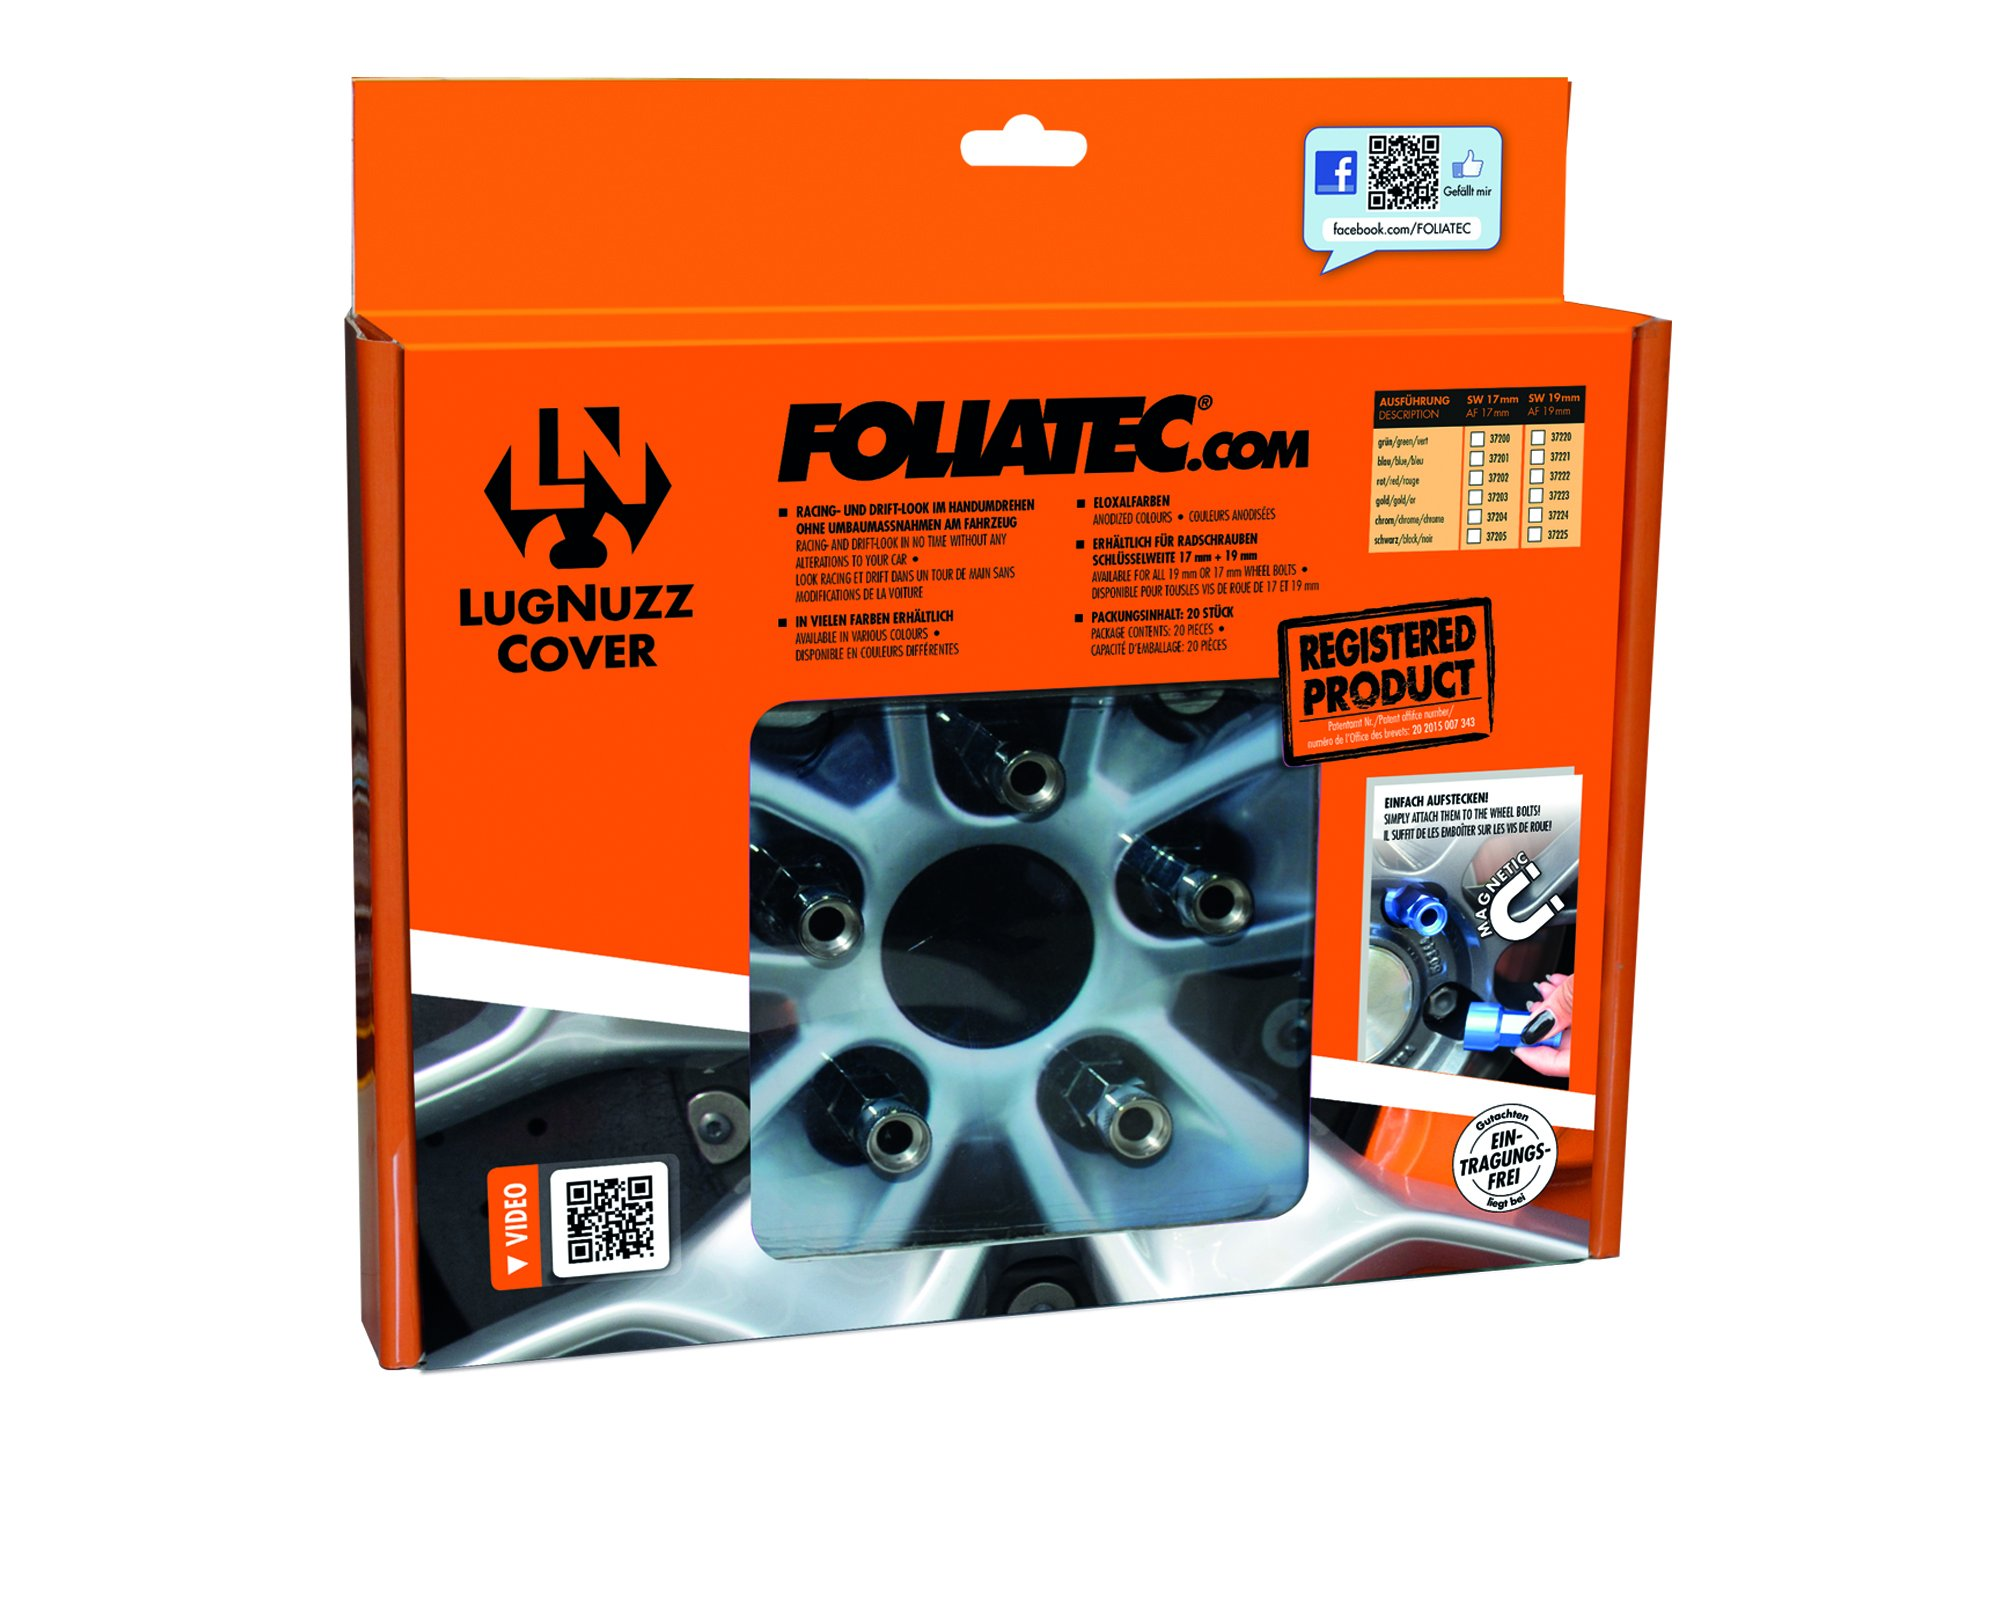 Foliatec F37200 LugNuzz Cover Set, Green Anodized, Size 17 mm, Set of 20 by Foliatec (Image #6)